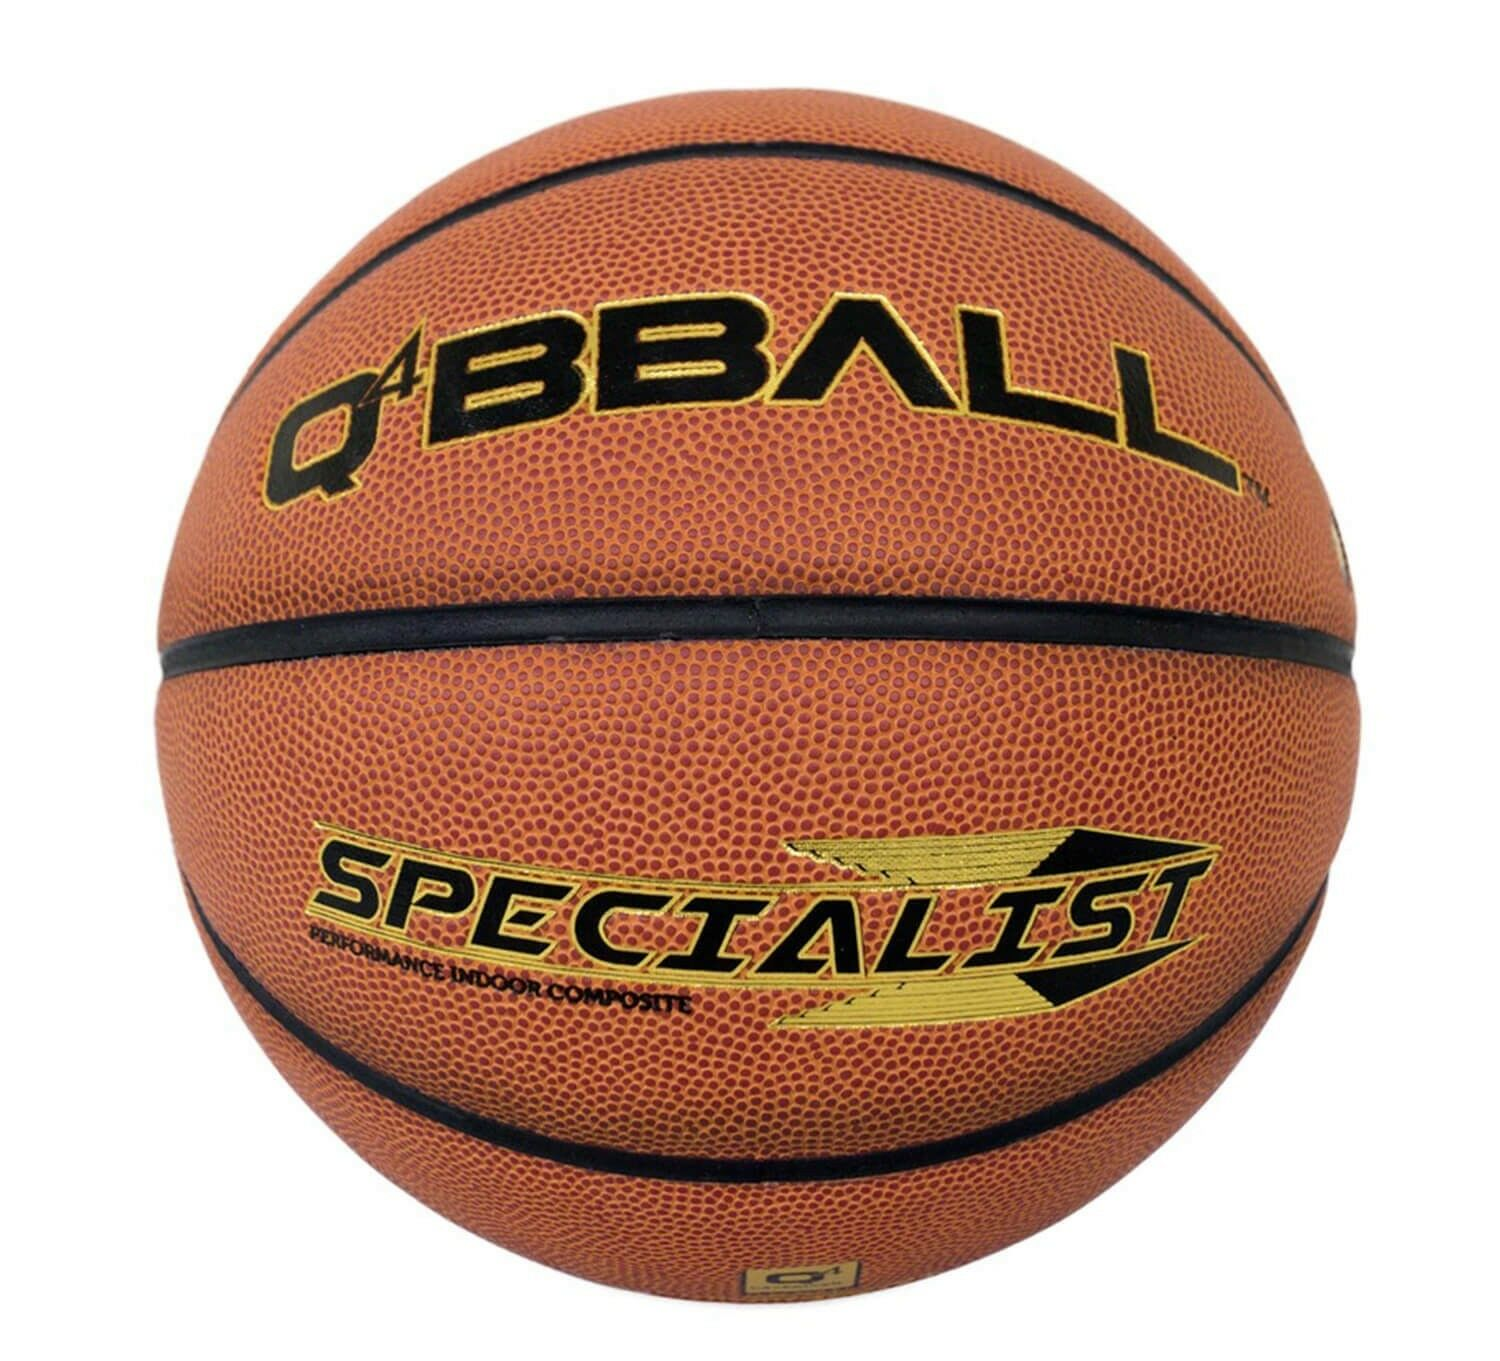 Q4 Specialist Basketball, Tan, Size 7 - Only  w Free Postage